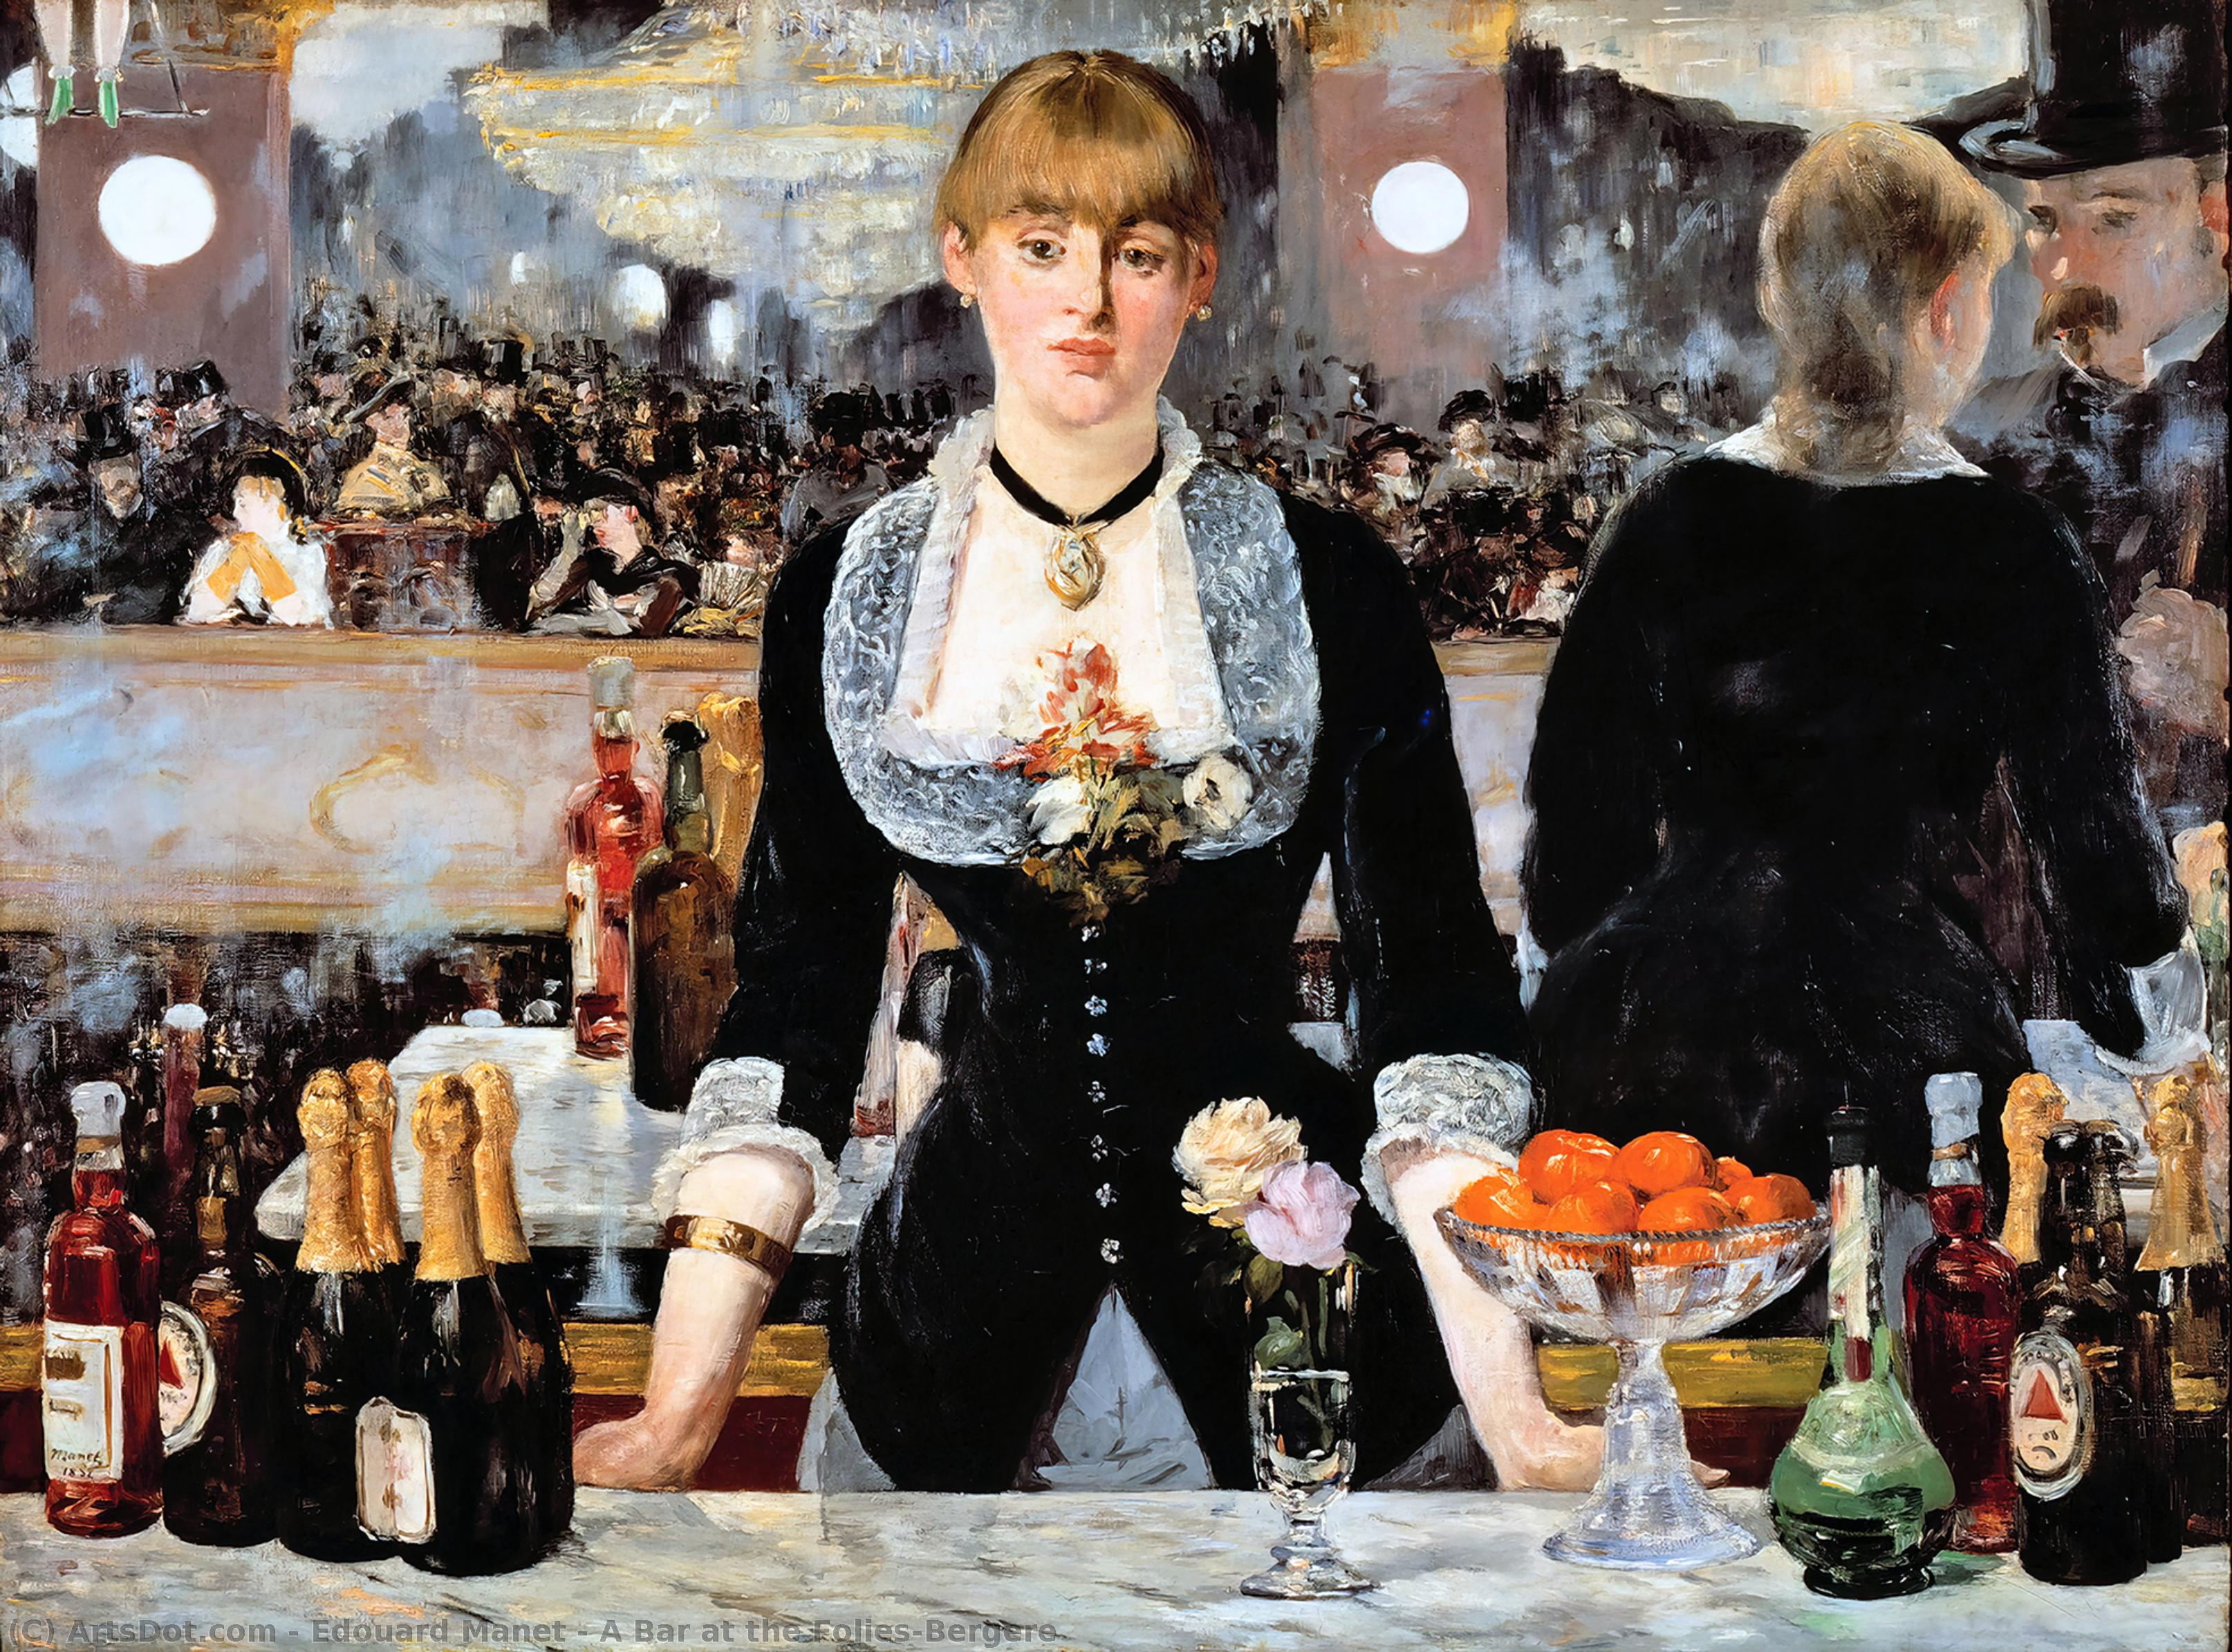 Wikioo.org - The Encyclopedia of Fine Arts - Painting, Artwork by Edouard Manet - A Bar at the Folies-Bergere